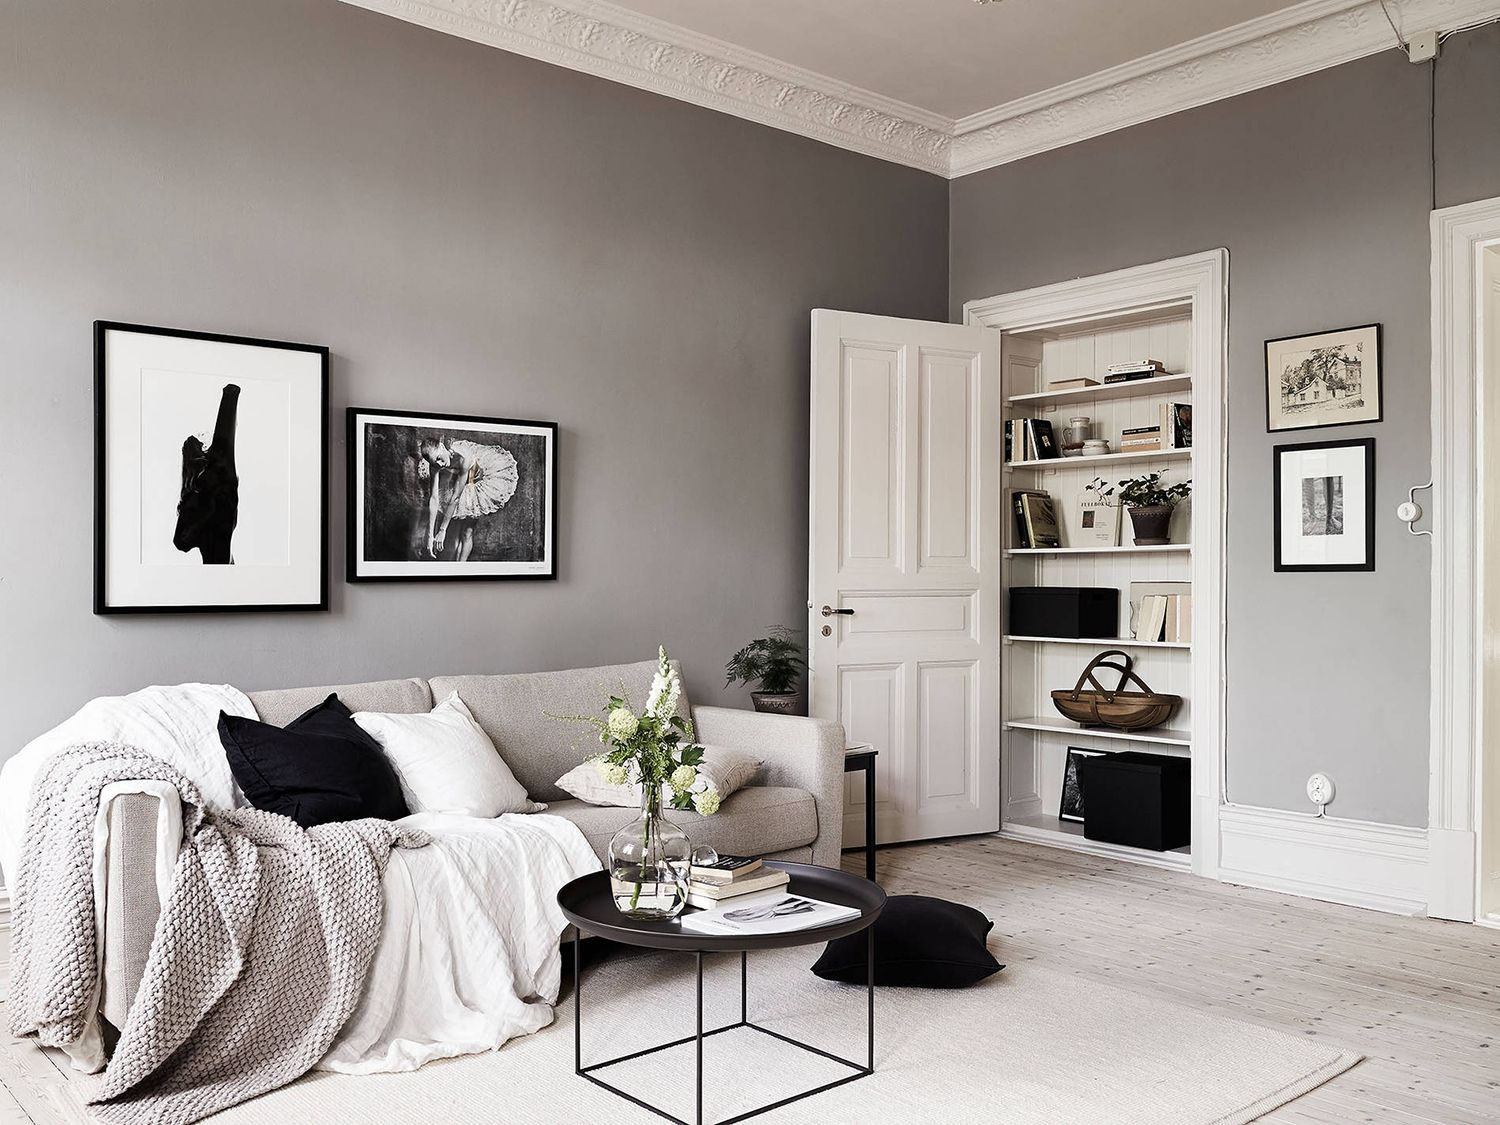 A Swedish Home With Neutral Colors